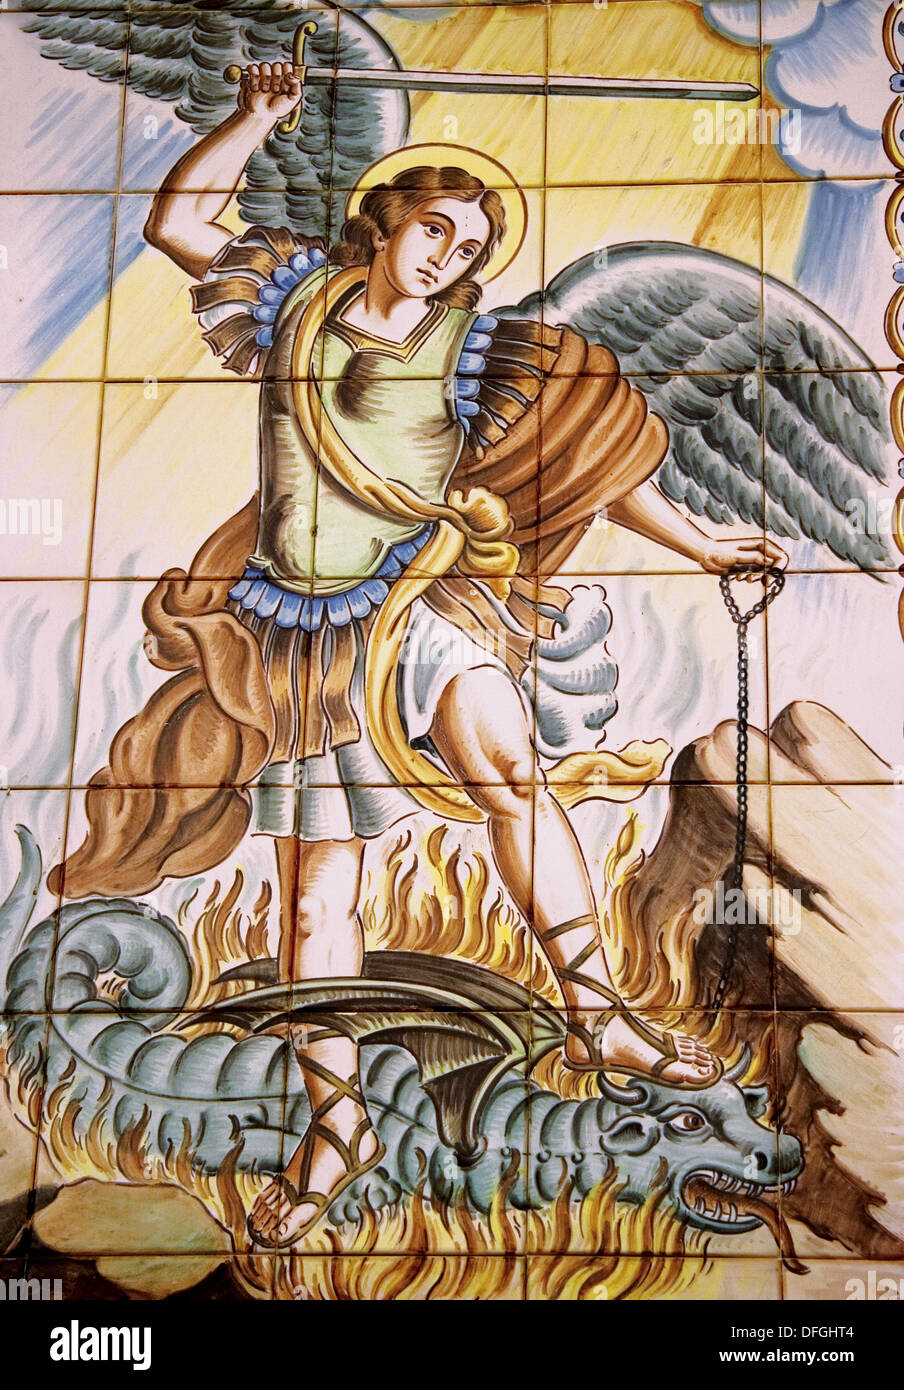 Saint Michael and the Dragon, on painted ceramic tiles at the church of Murla, in the Jalon valley. Alicante province. Spain. - Stock Image